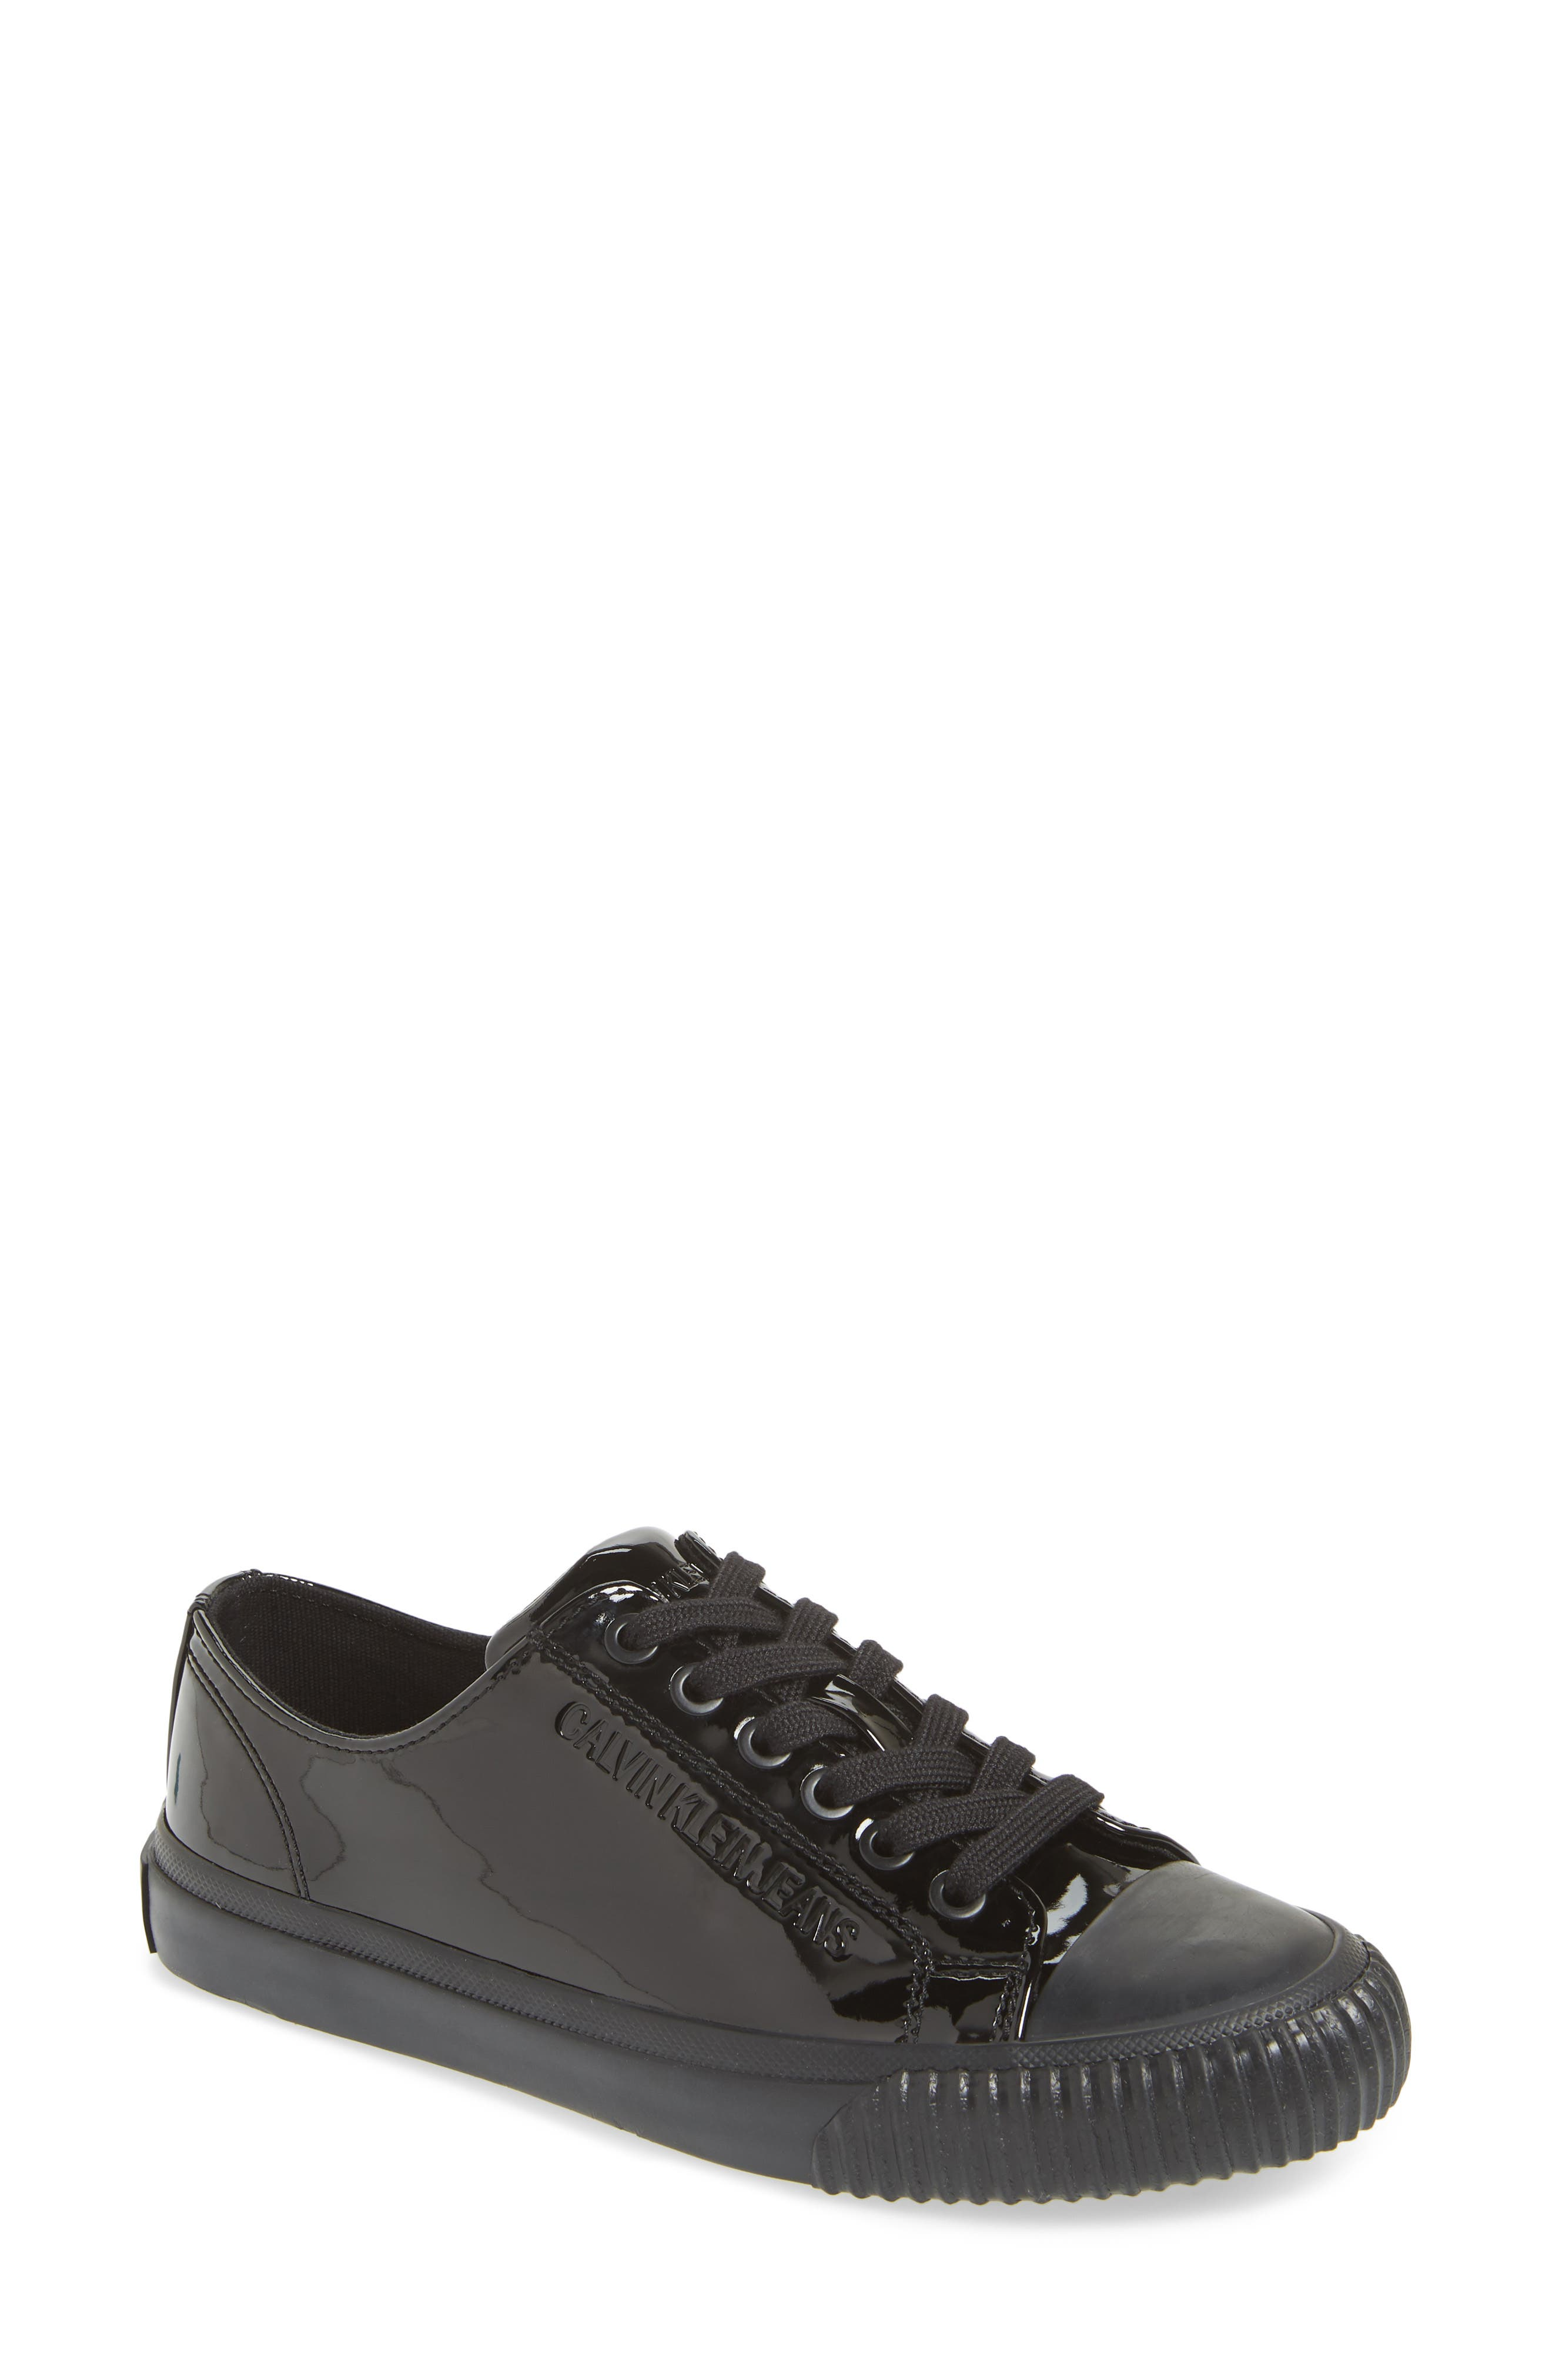 Ireland Lace-Up Sneaker,                             Main thumbnail 1, color,                             BLACK